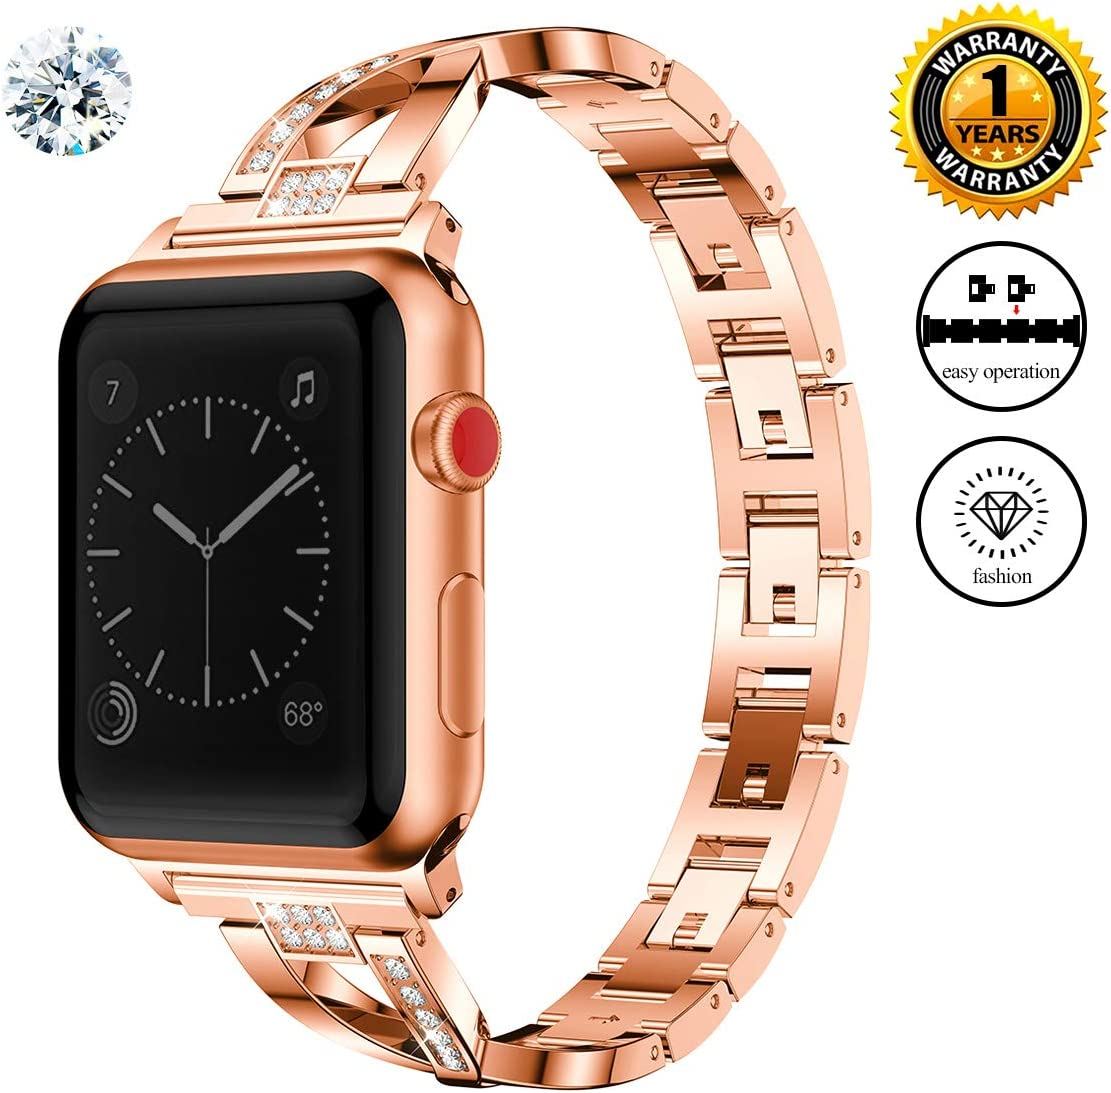 Jomoq Bling Replacement Bands Compatible for Apple Watch Band 38mm 40mm 42mm 44mm Women Iwatch Series 4 3 2 1 Accessories Stainless Steel Wristband, Diamond Rhinestone Sport Strap (Small, Rose Gold)